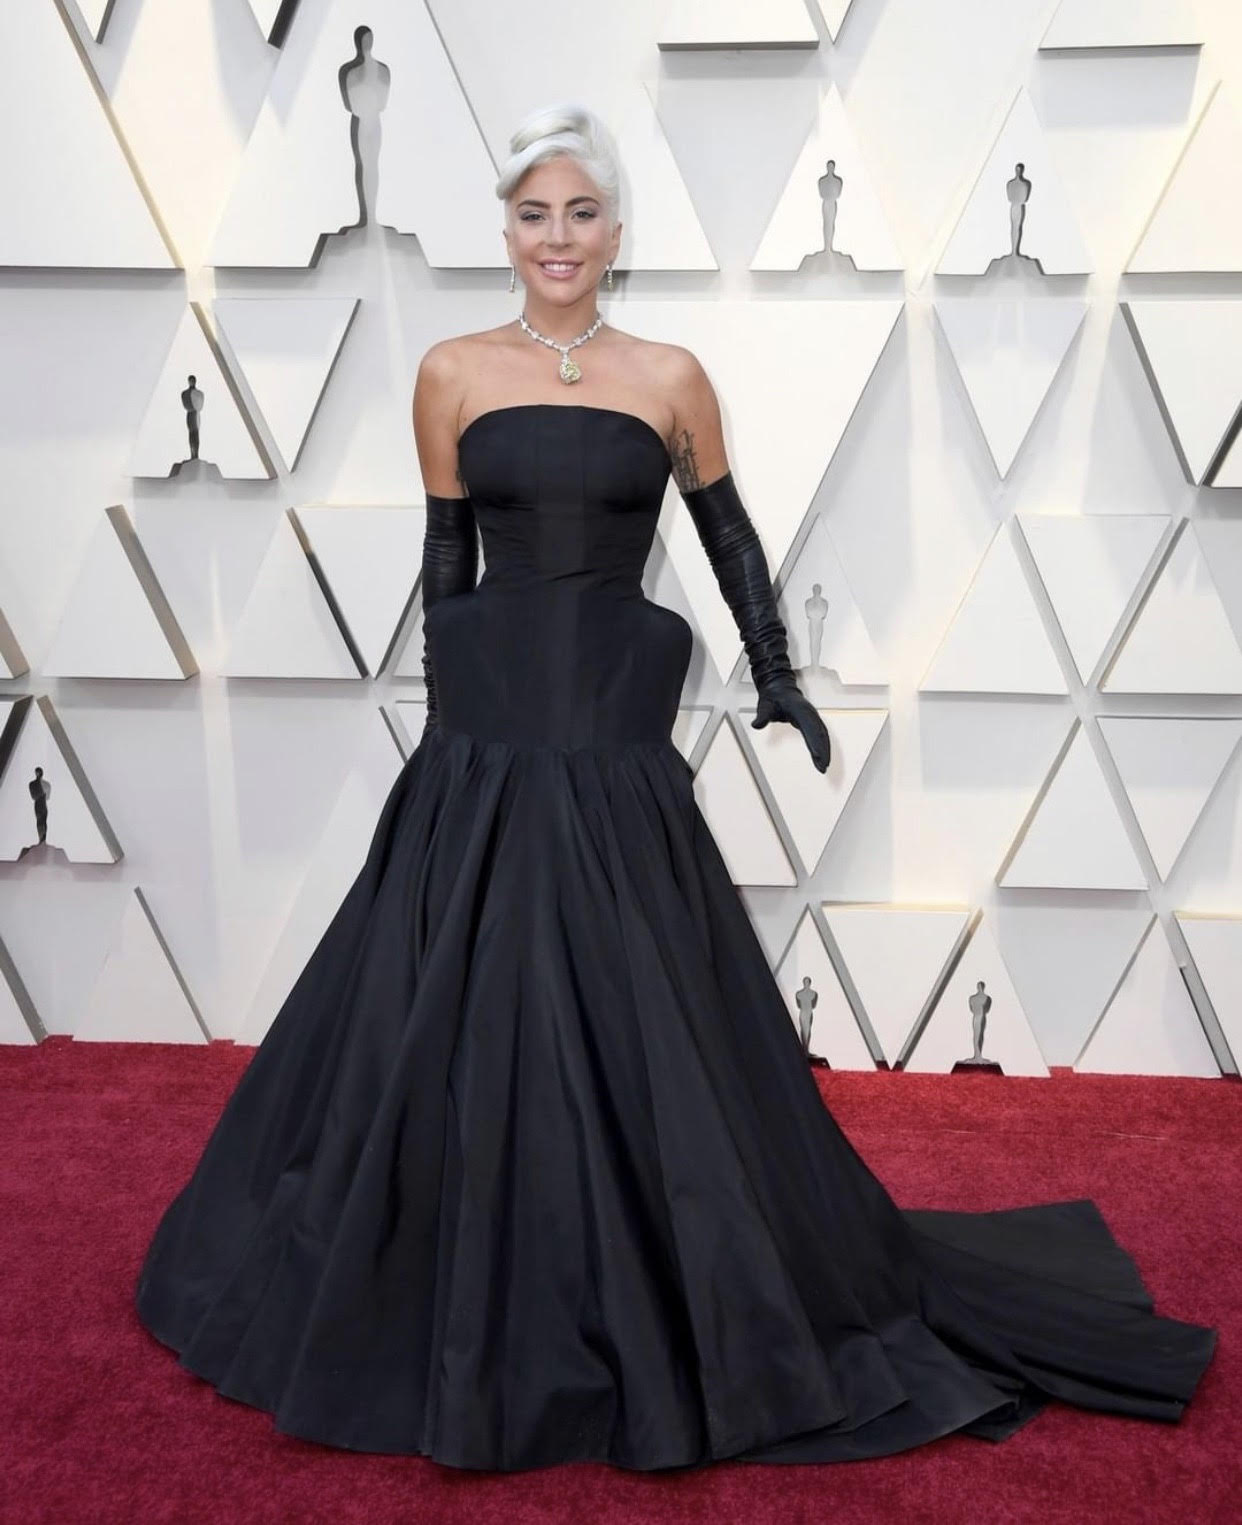 Oscars 2019: The Red Carpet's 8 Best Dressed!